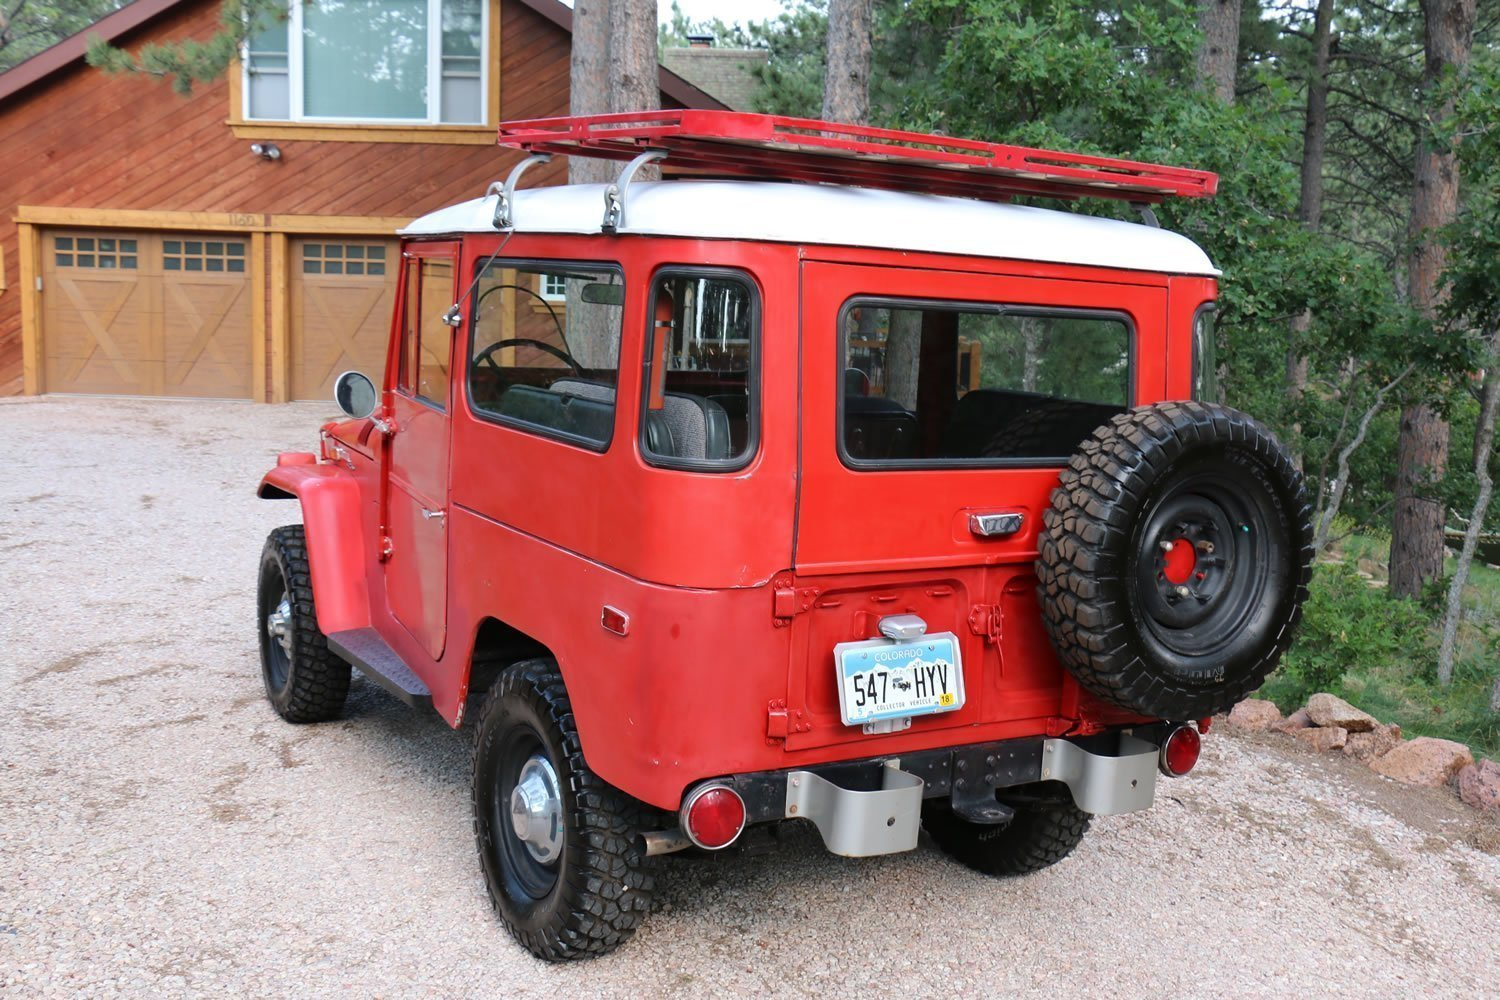 FOR SALE 1971 Toyota Land Cruiser FJ40 Red 79k miles